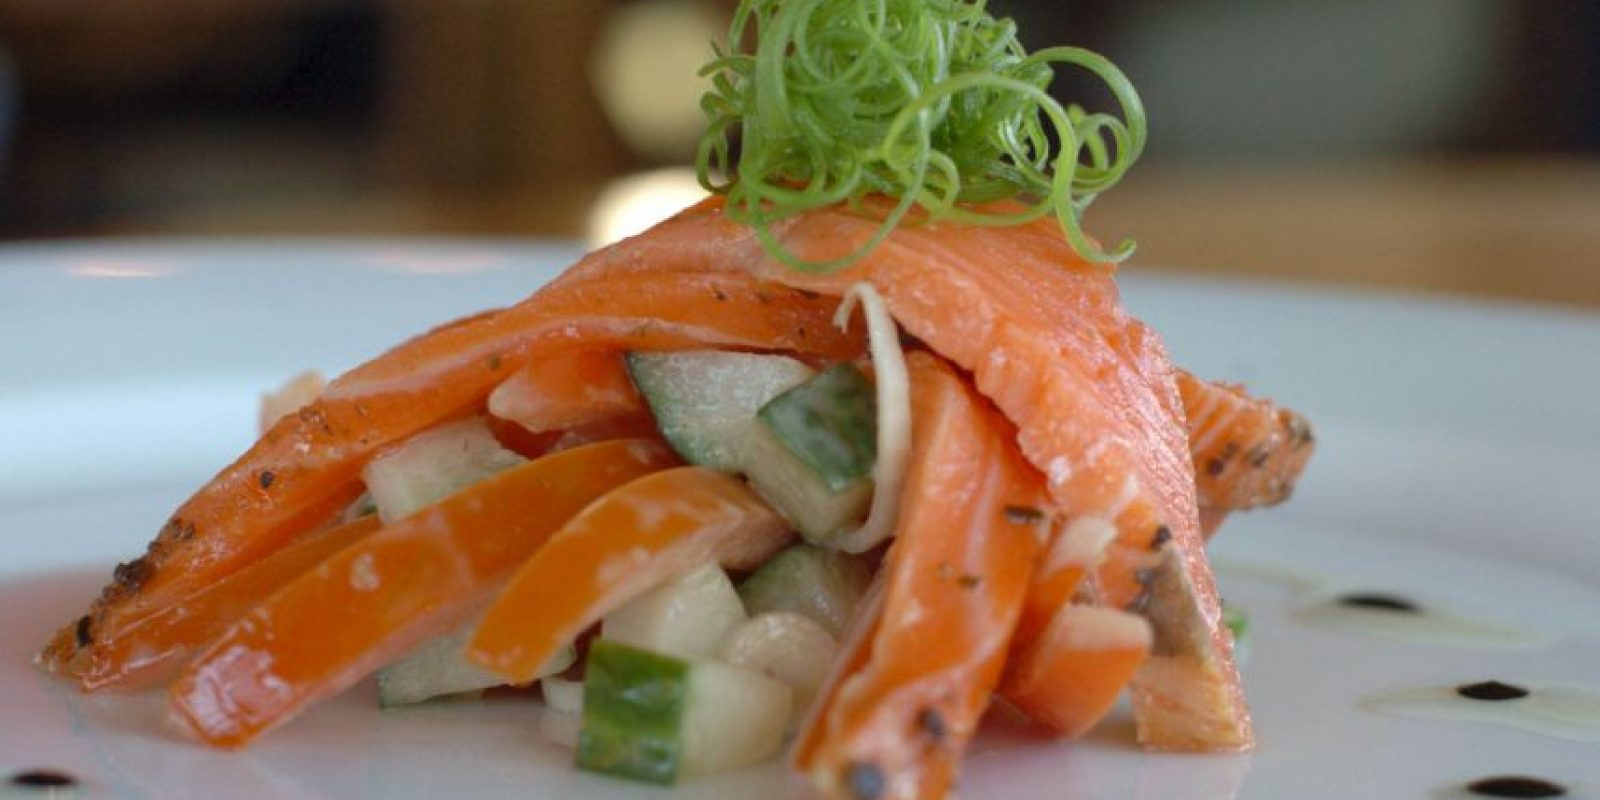 6. Salmon cultivado Foto: Getty Images